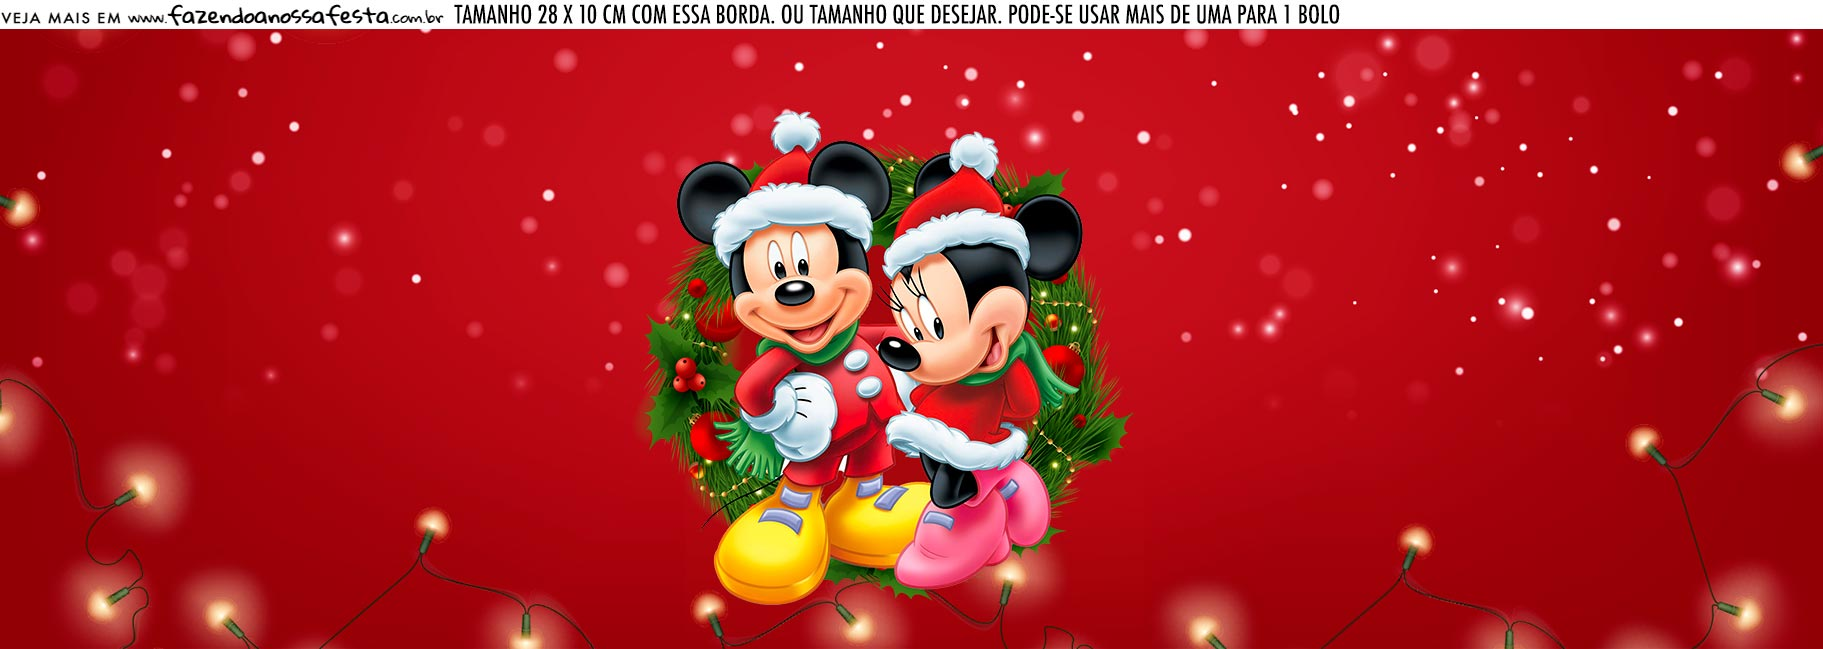 Saia Lateral de Bolo Kit Festa Natal Mickey e Minnie